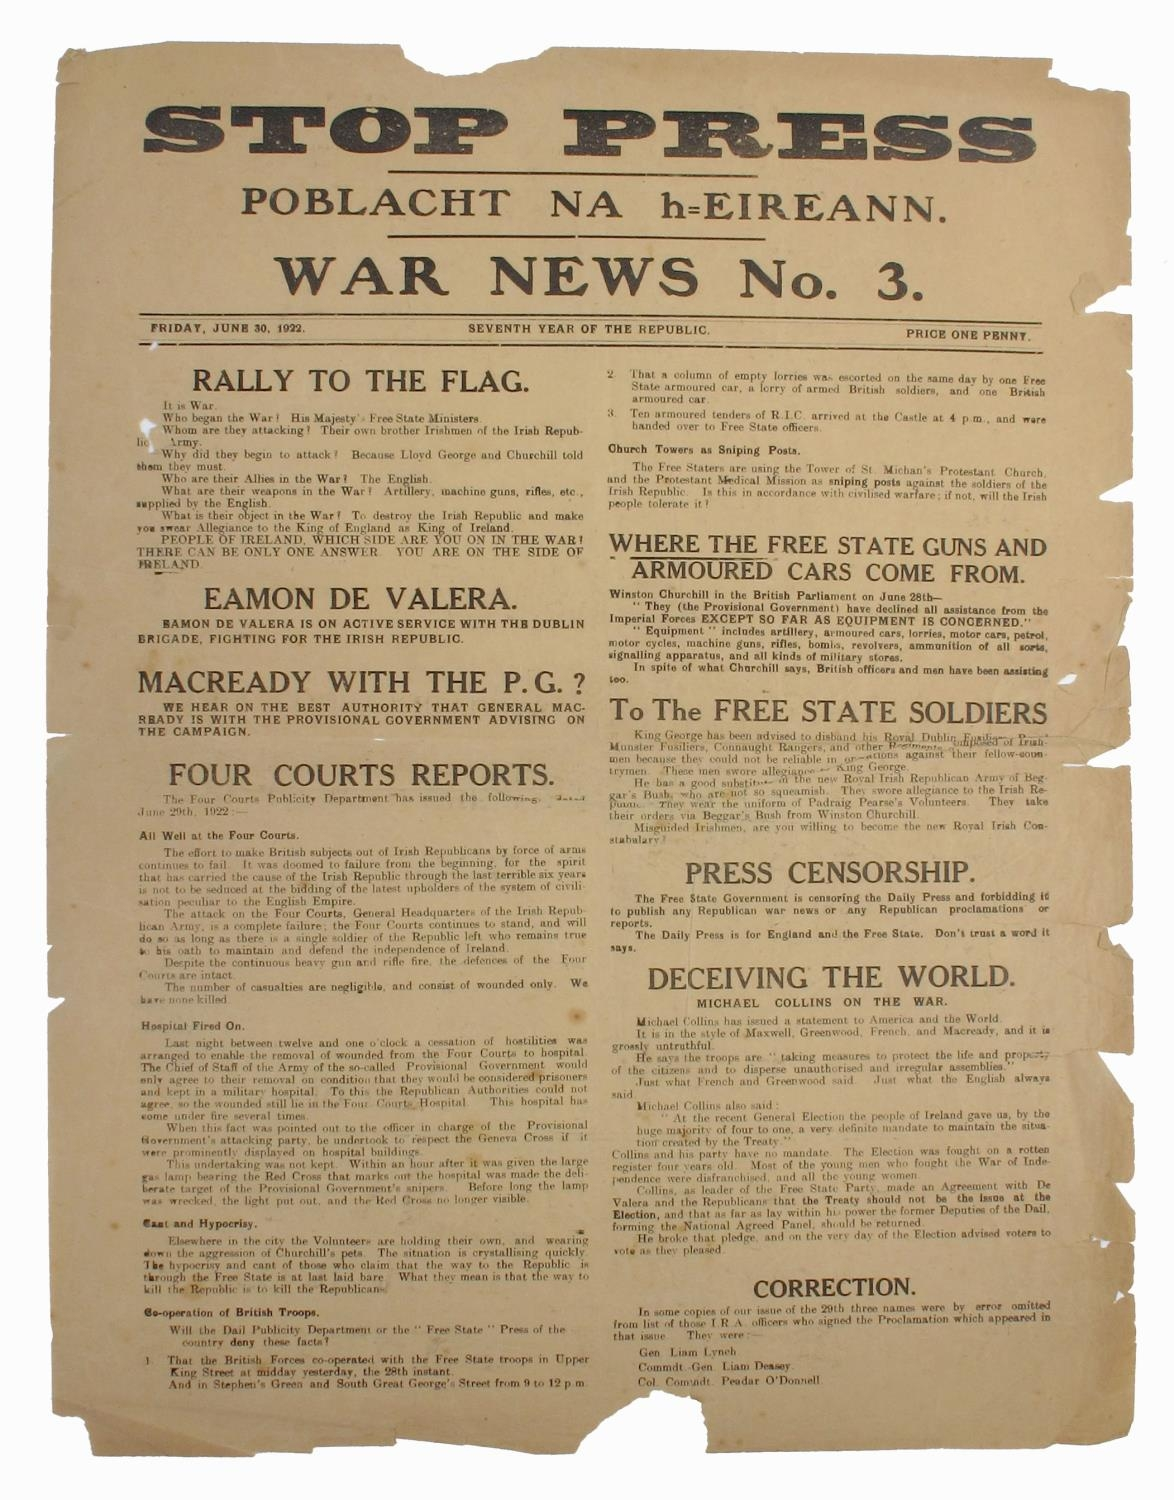 1922 (30 June) Poblacht Na hÉireann STOP PRESS WAR NEWS No. 3 Broadsheet. Printed in the Four Courts